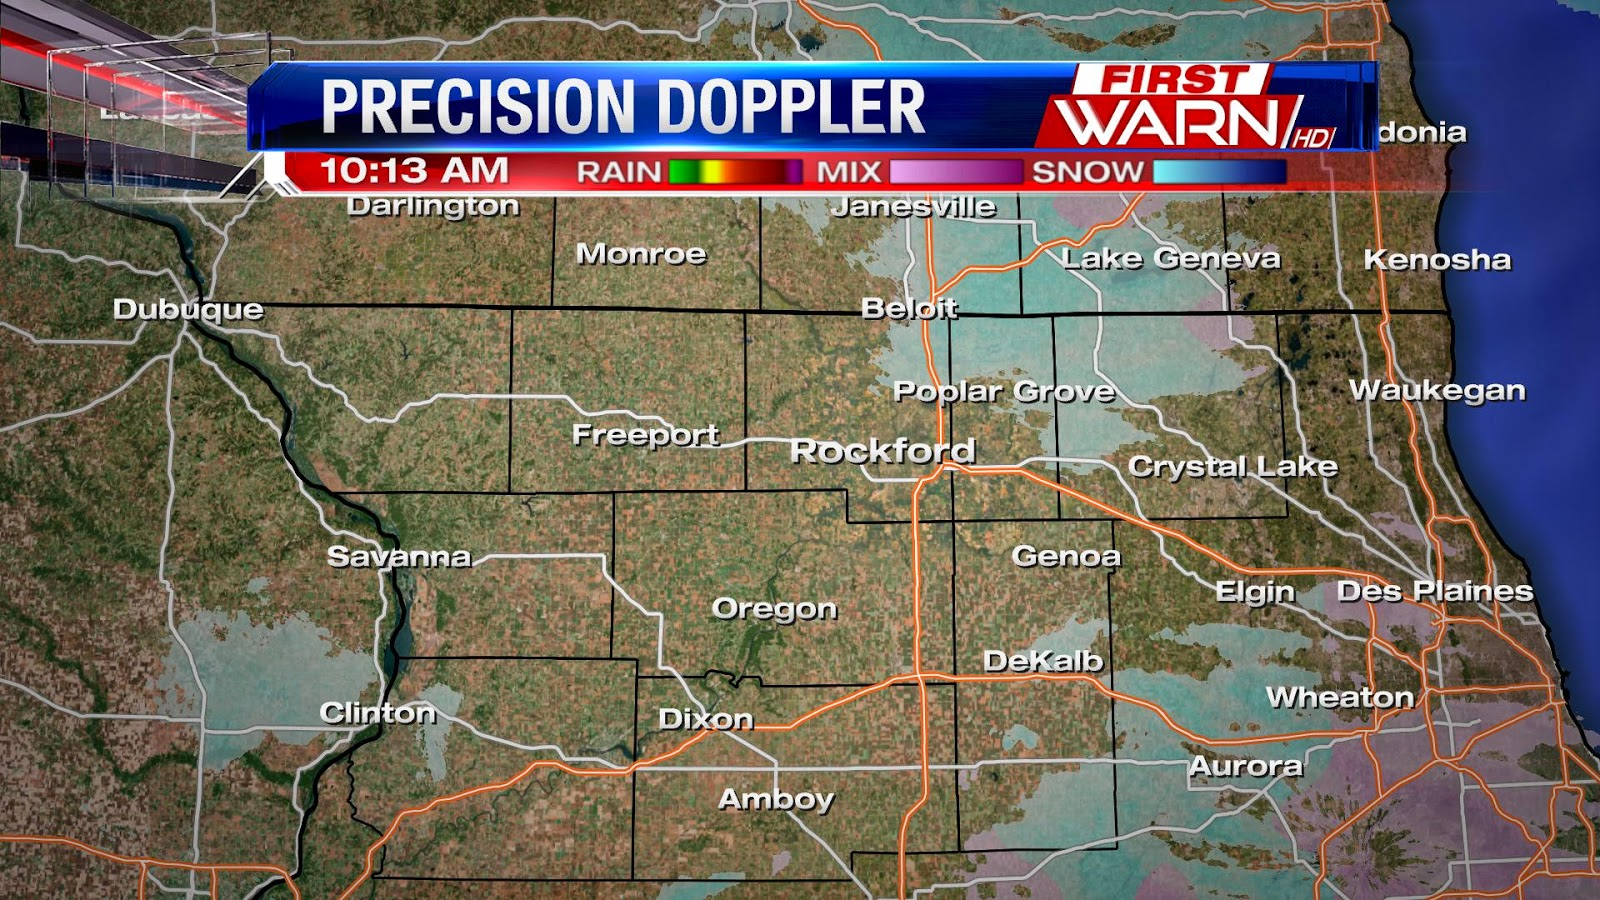 First Warn Weather Team: Tuesday Morning Weather Update